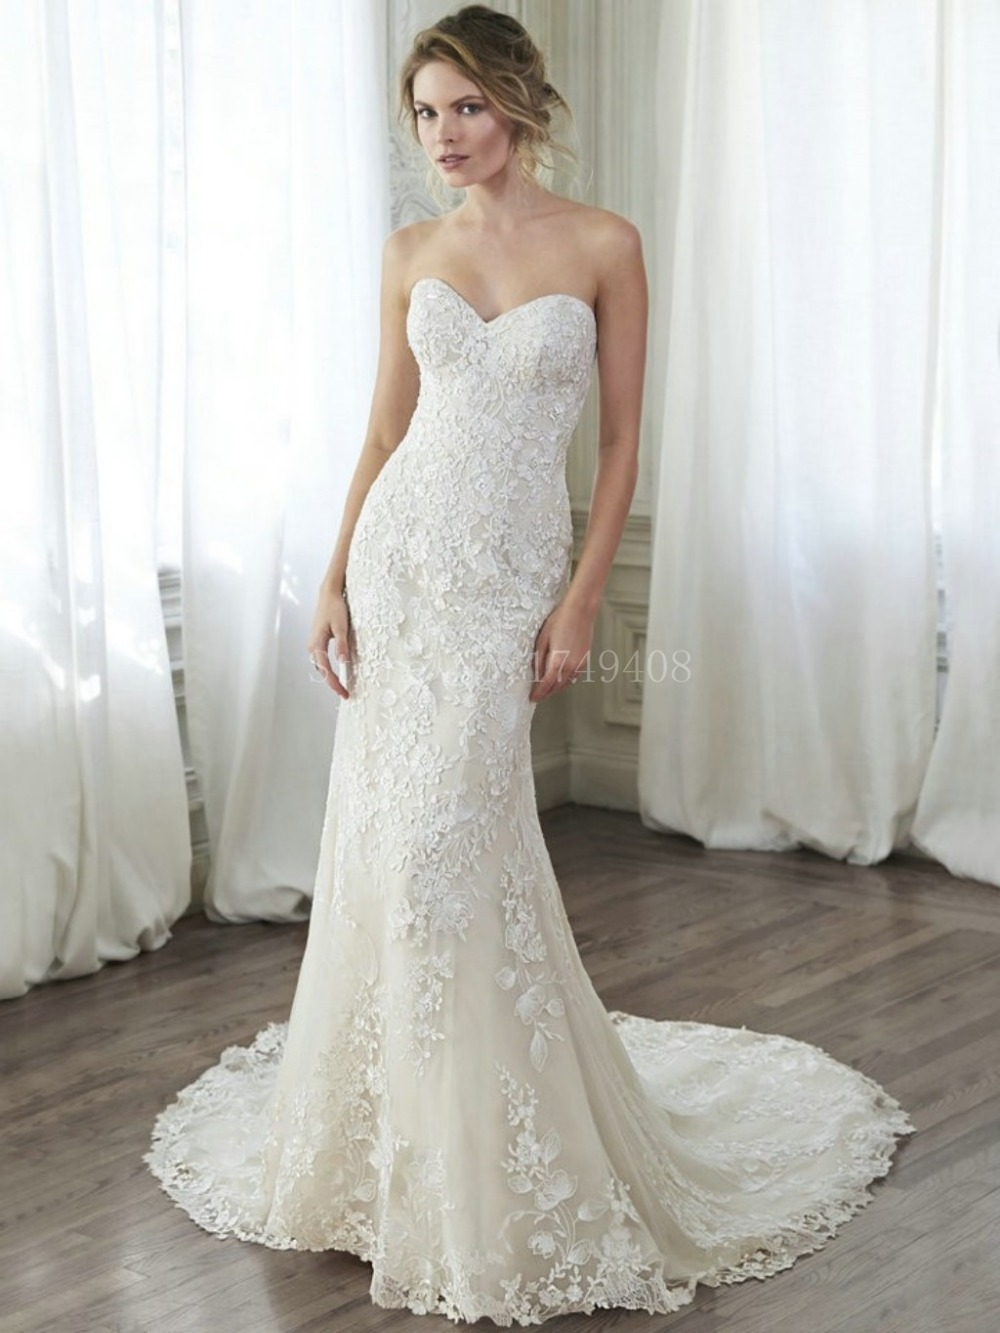 sexy and edgy bien savvy wedding dresses collection cheap sexy wedding dresses bien savvy wedding dresses collection 6